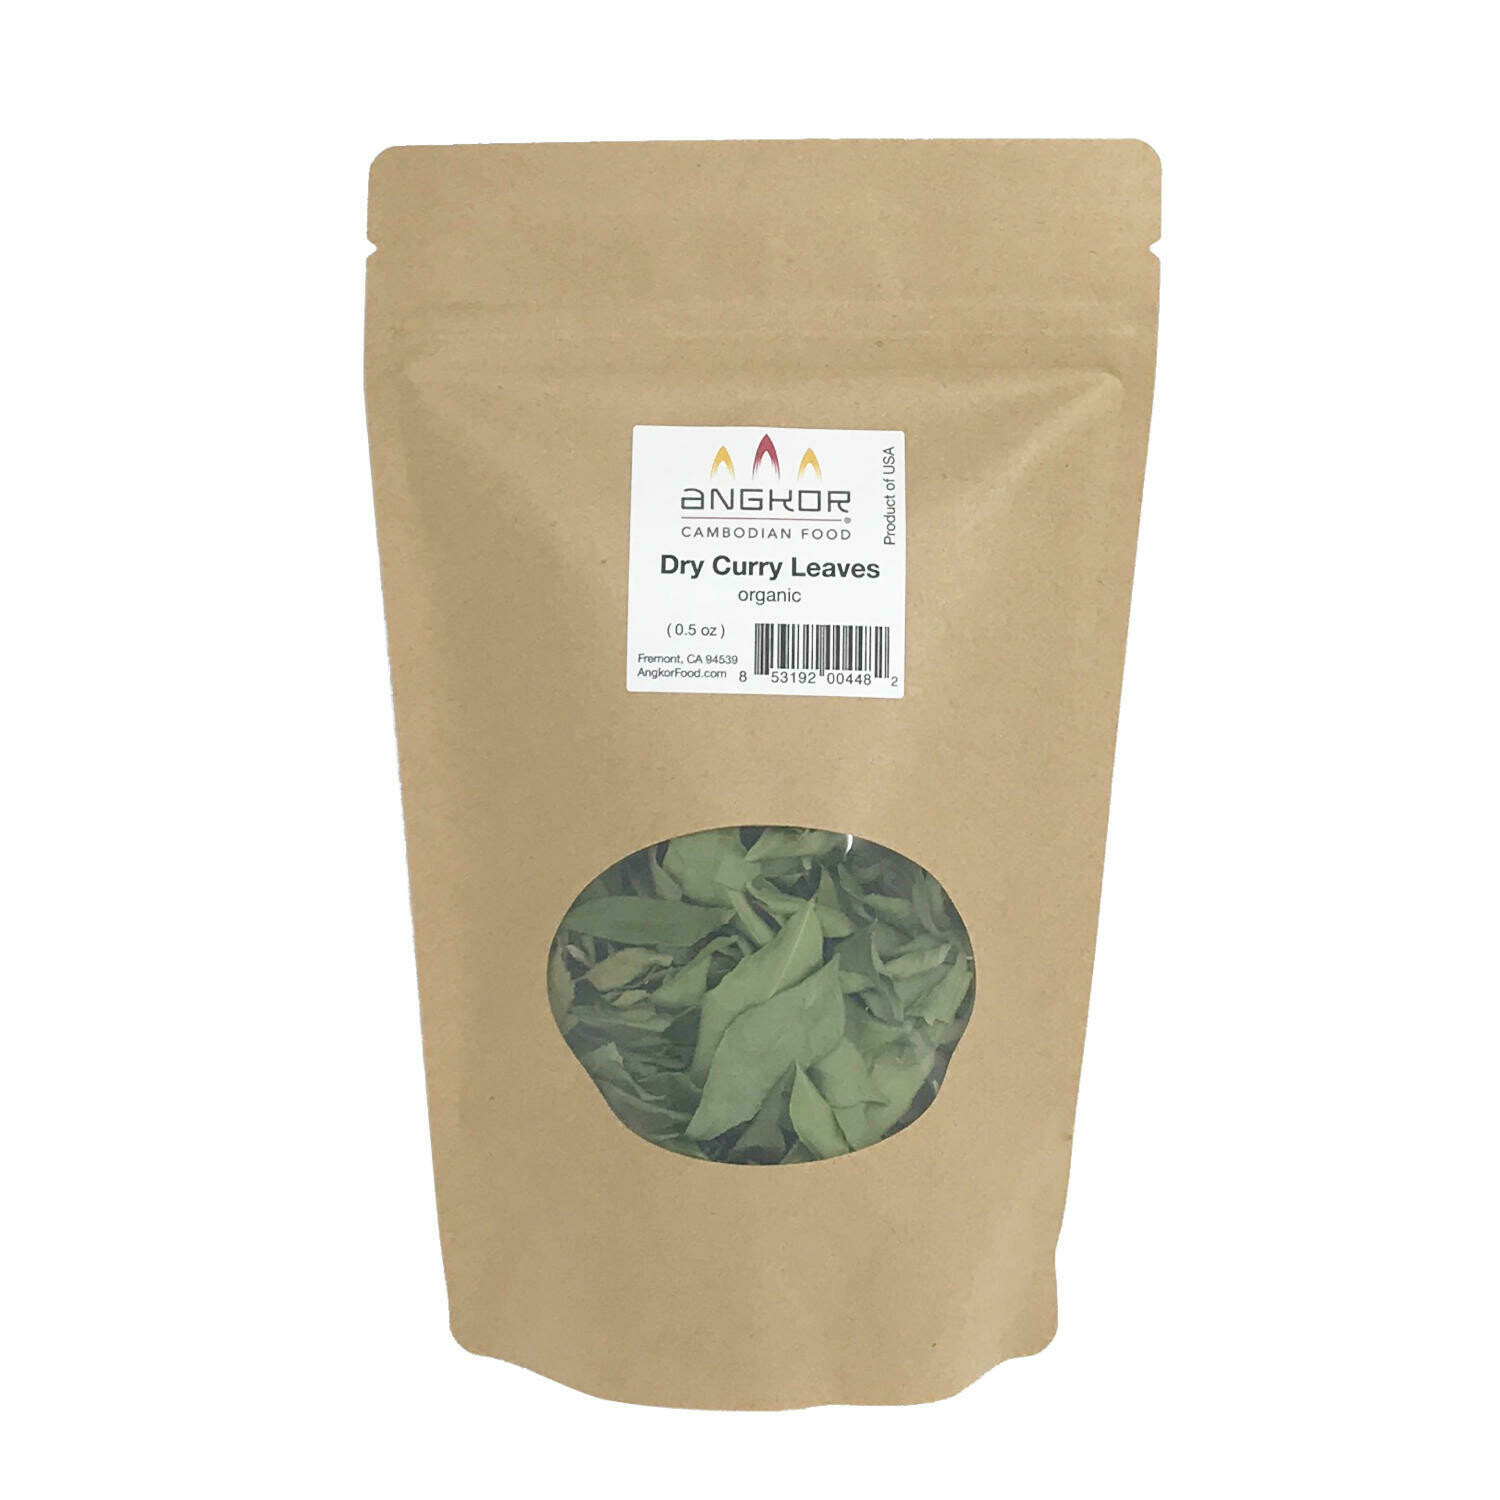 Organic Dry Curry Leaves - 0.5 oz (14g)